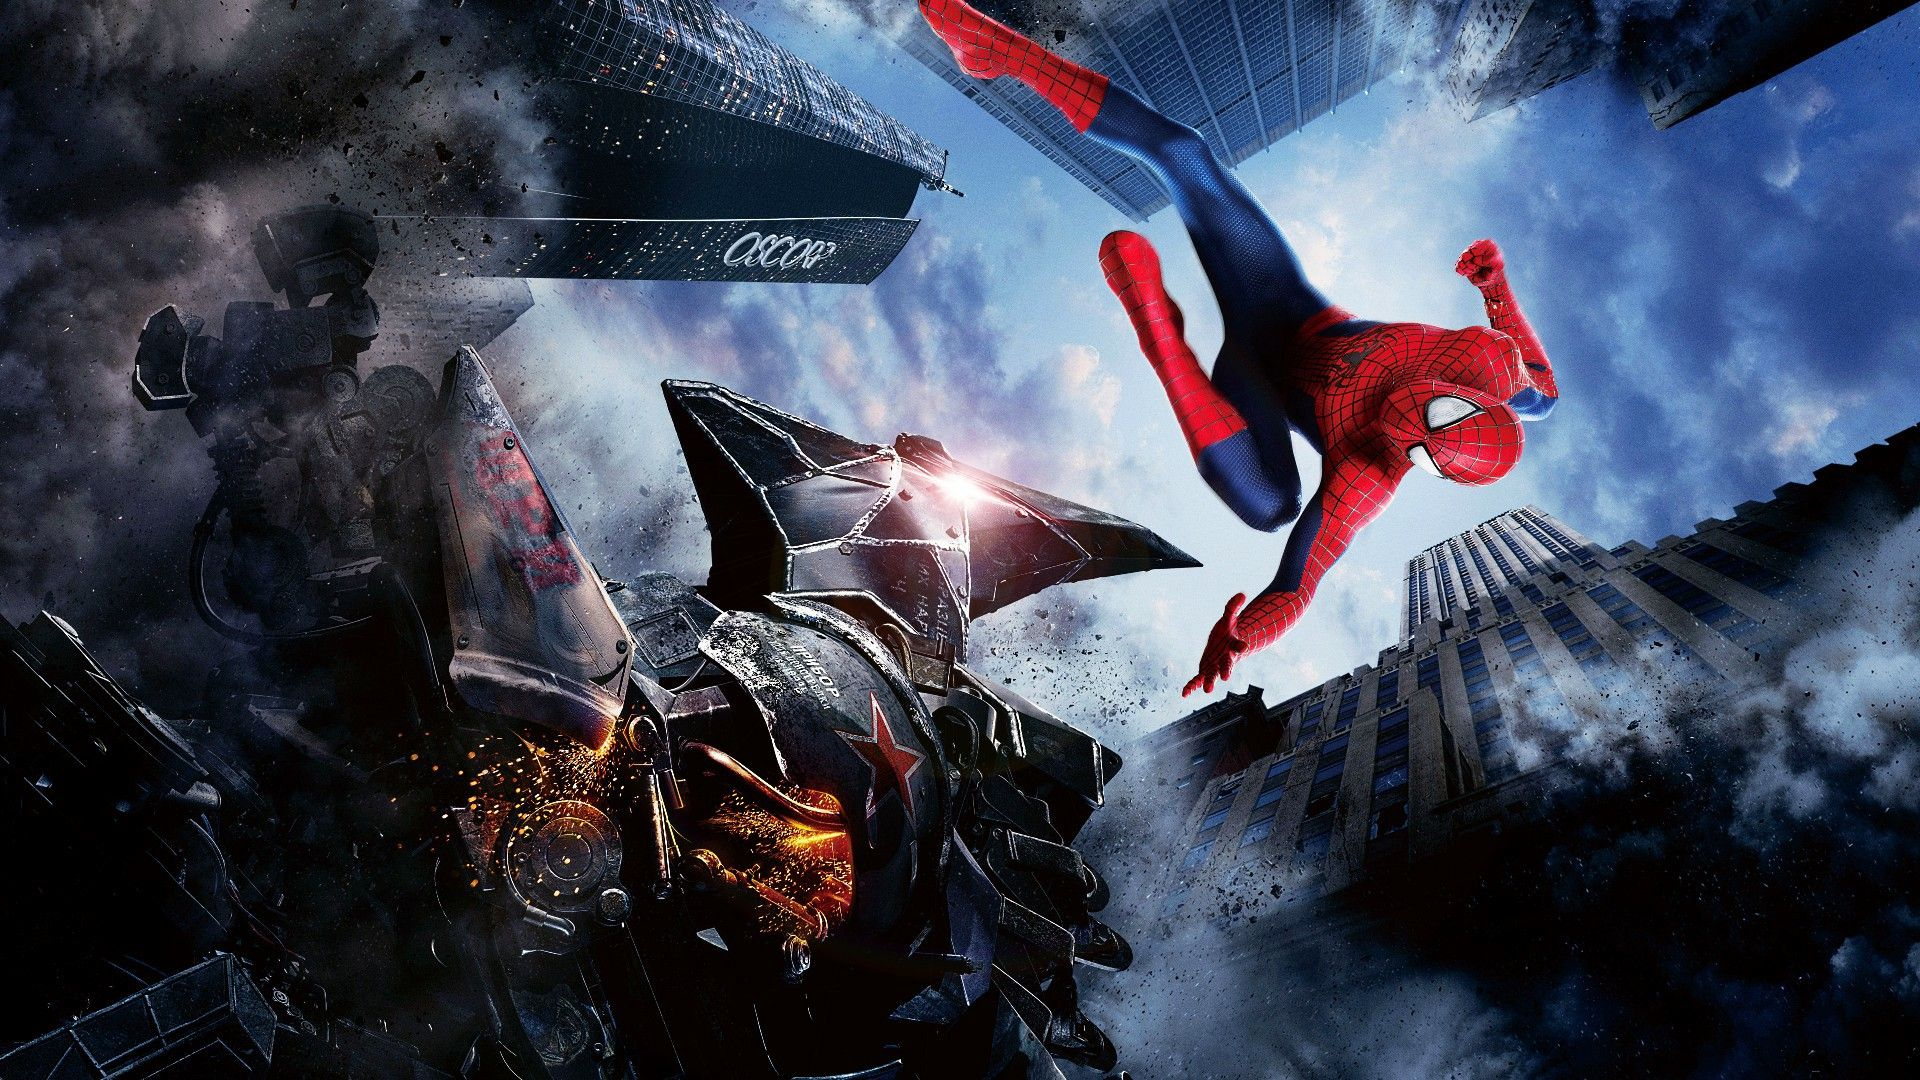 spiderman wallpapers in hd group | hd wallpapers | pinterest